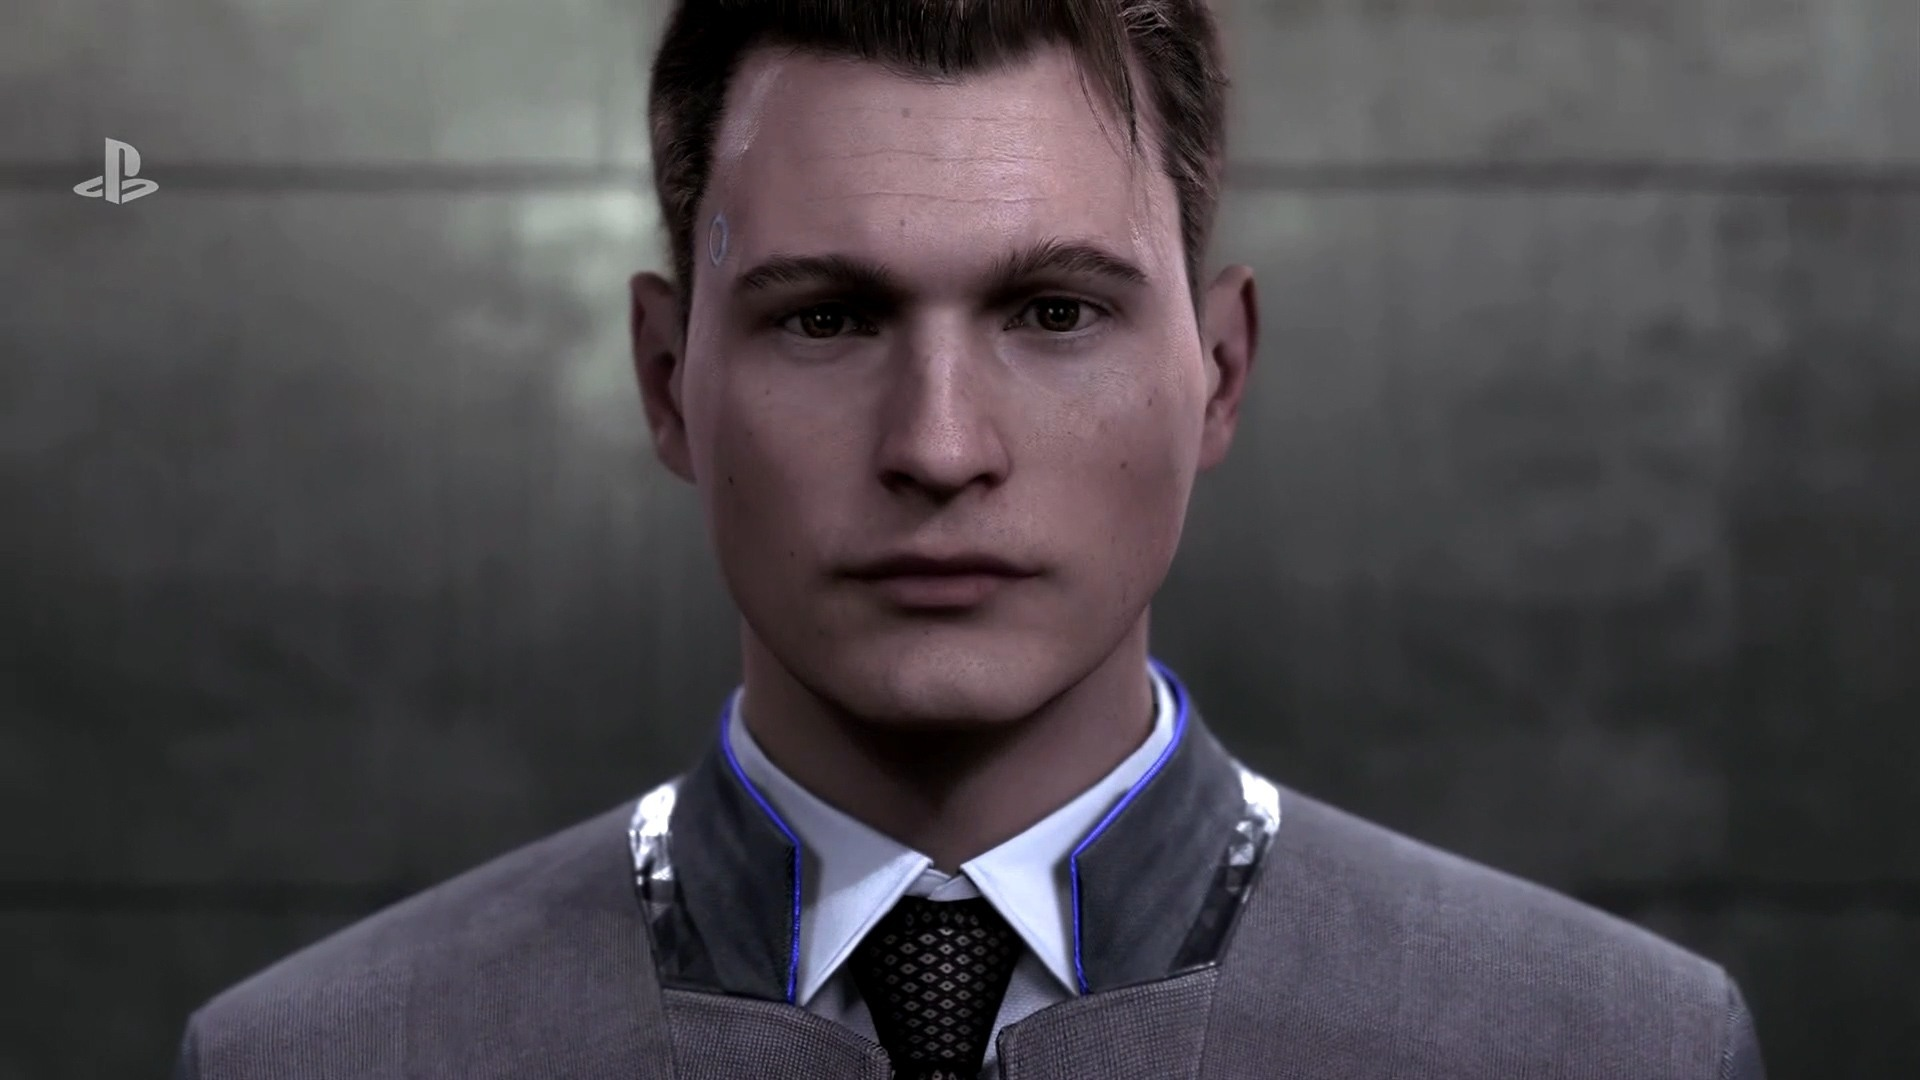 connor become human